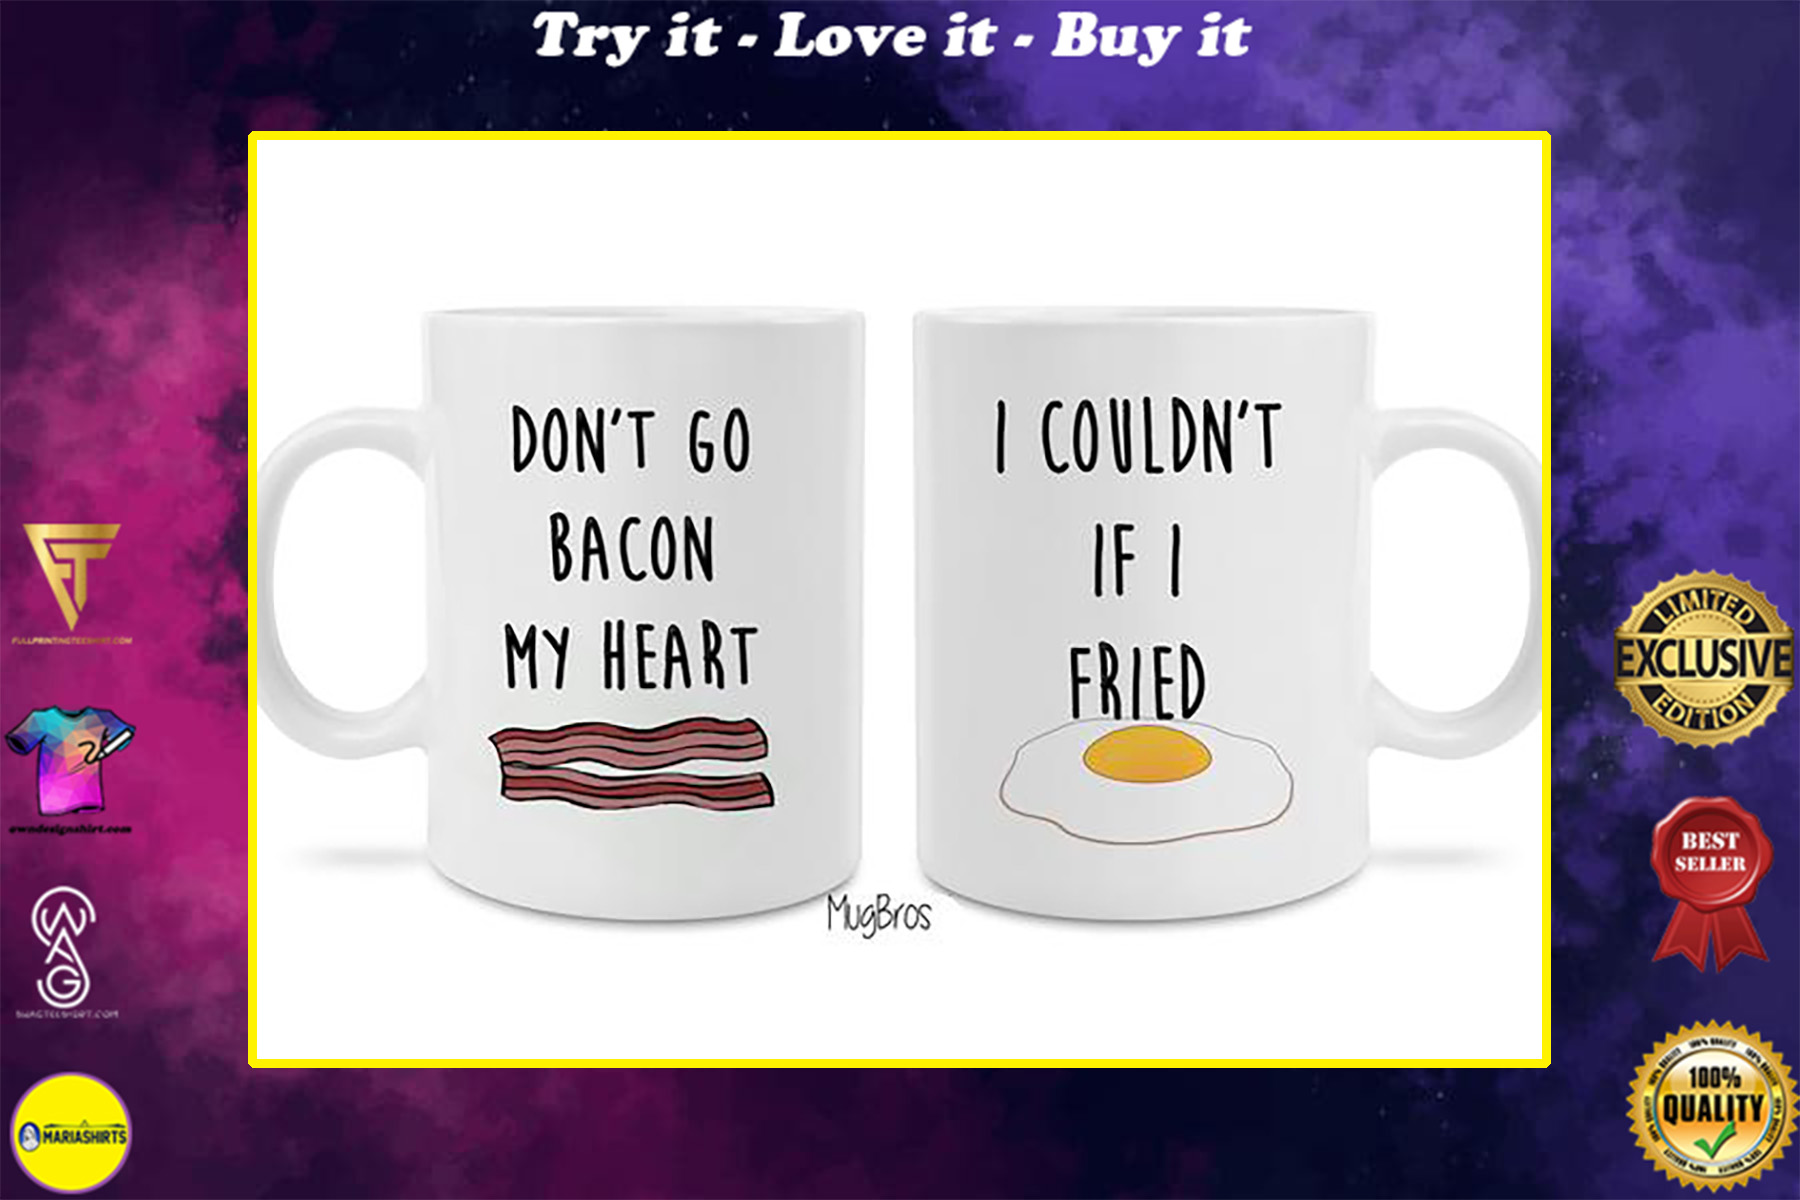 dont go bacon my heart i couldnt if i fried eggs and bacon happy valentines day mug